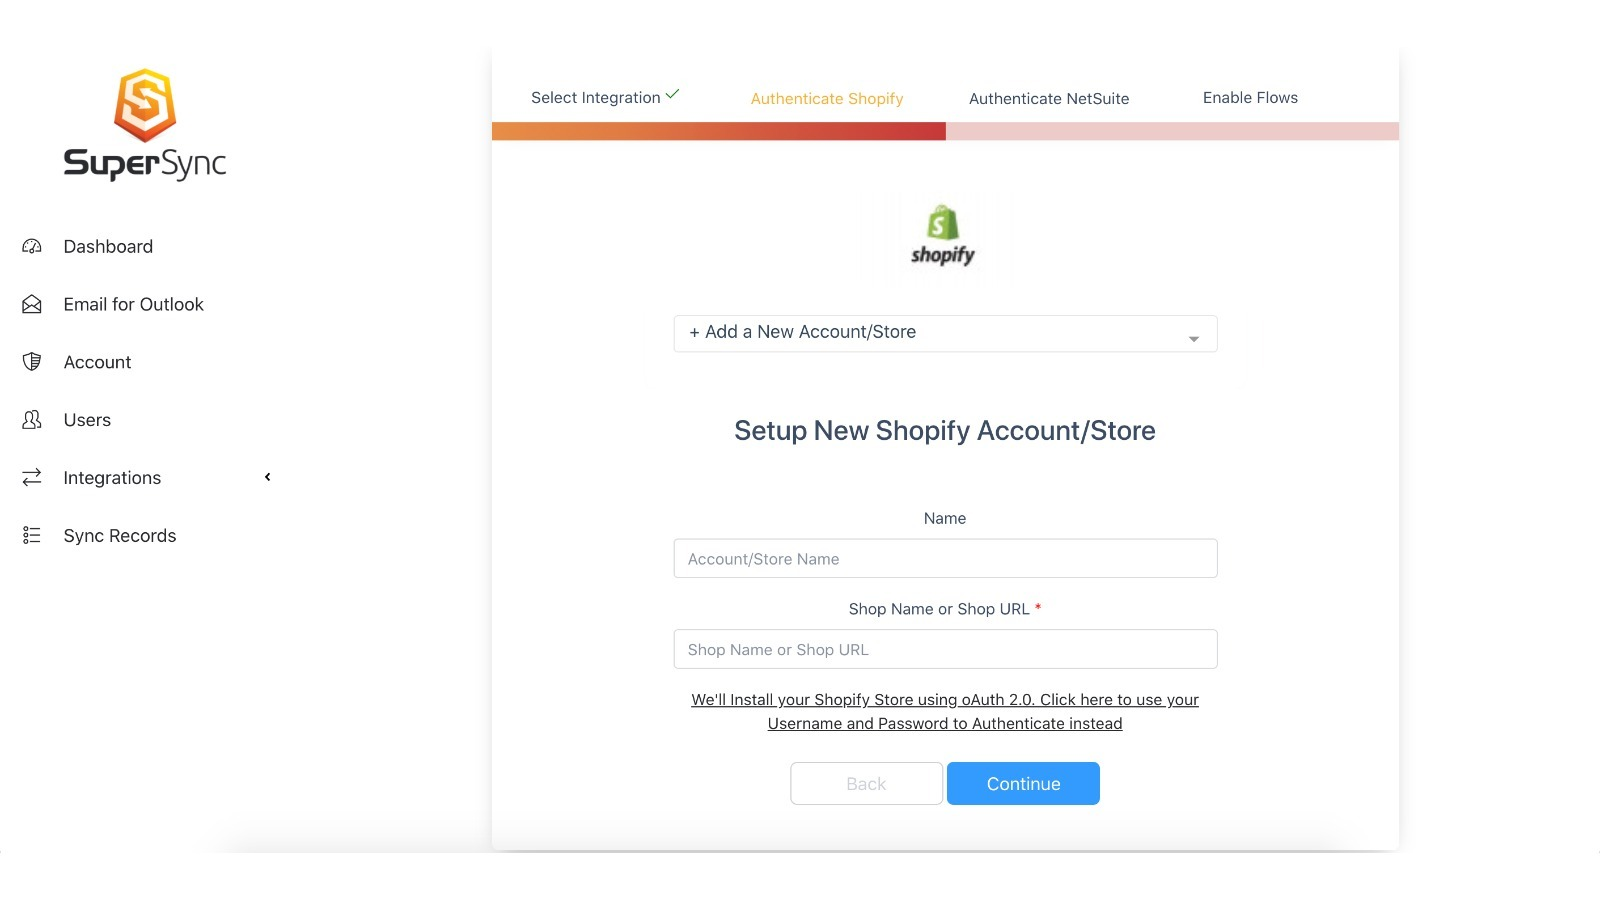 Easily add you Shopify account to SuperSync and have it quickly sync with NetSuite